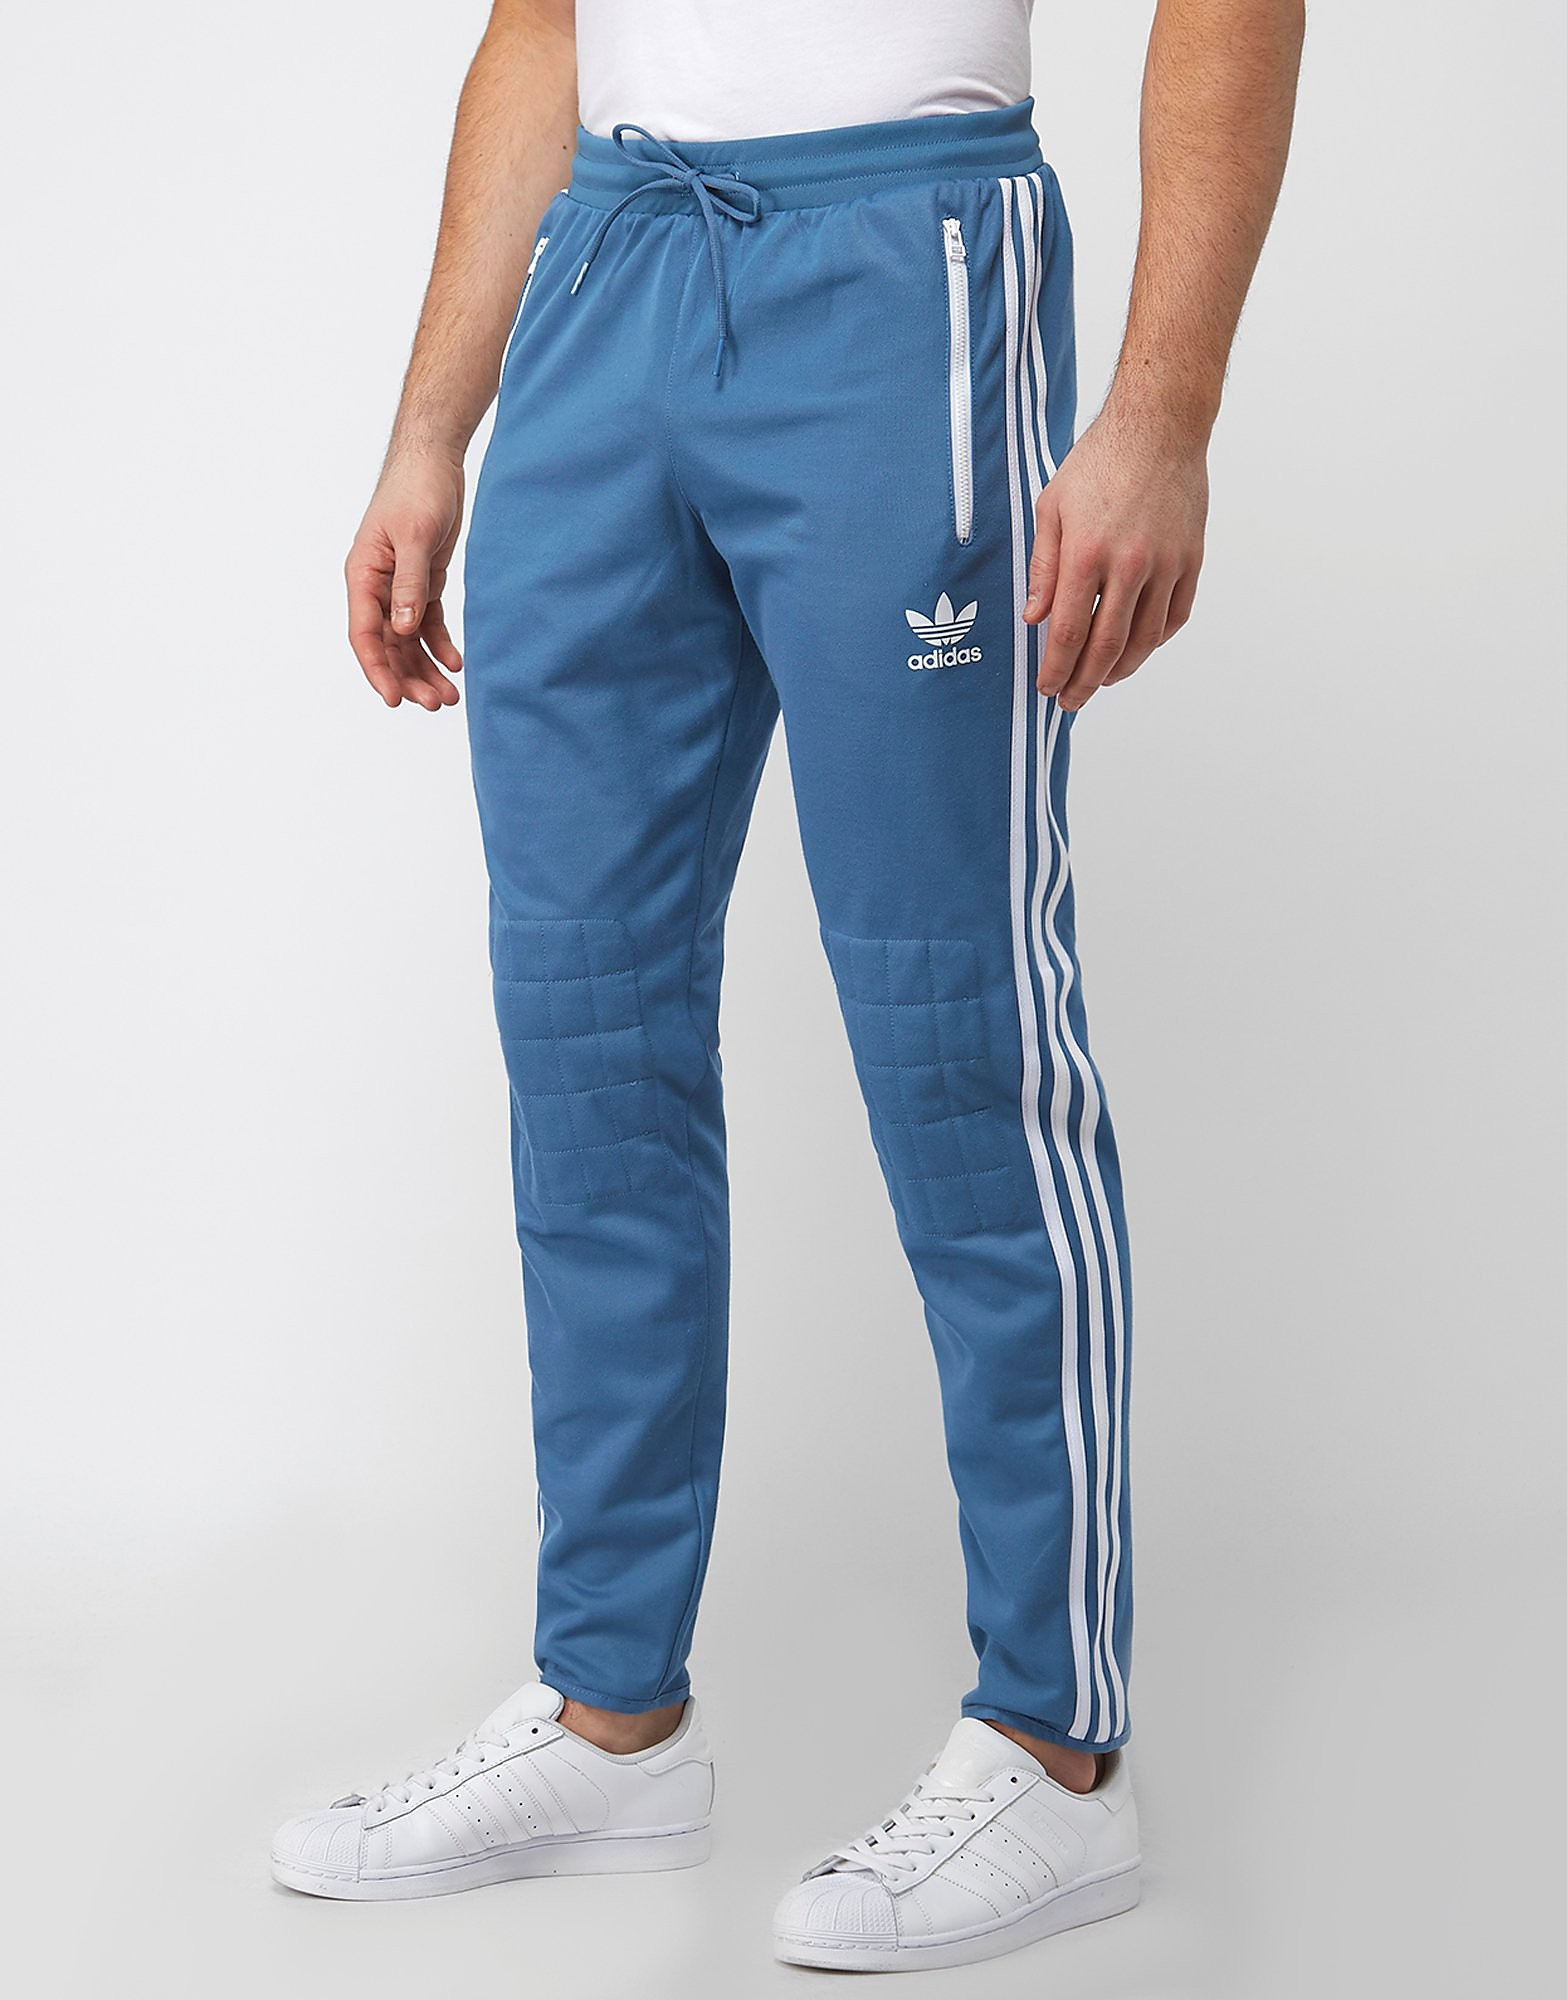 adidas Originals Goalie Track Pants  Blue Blue